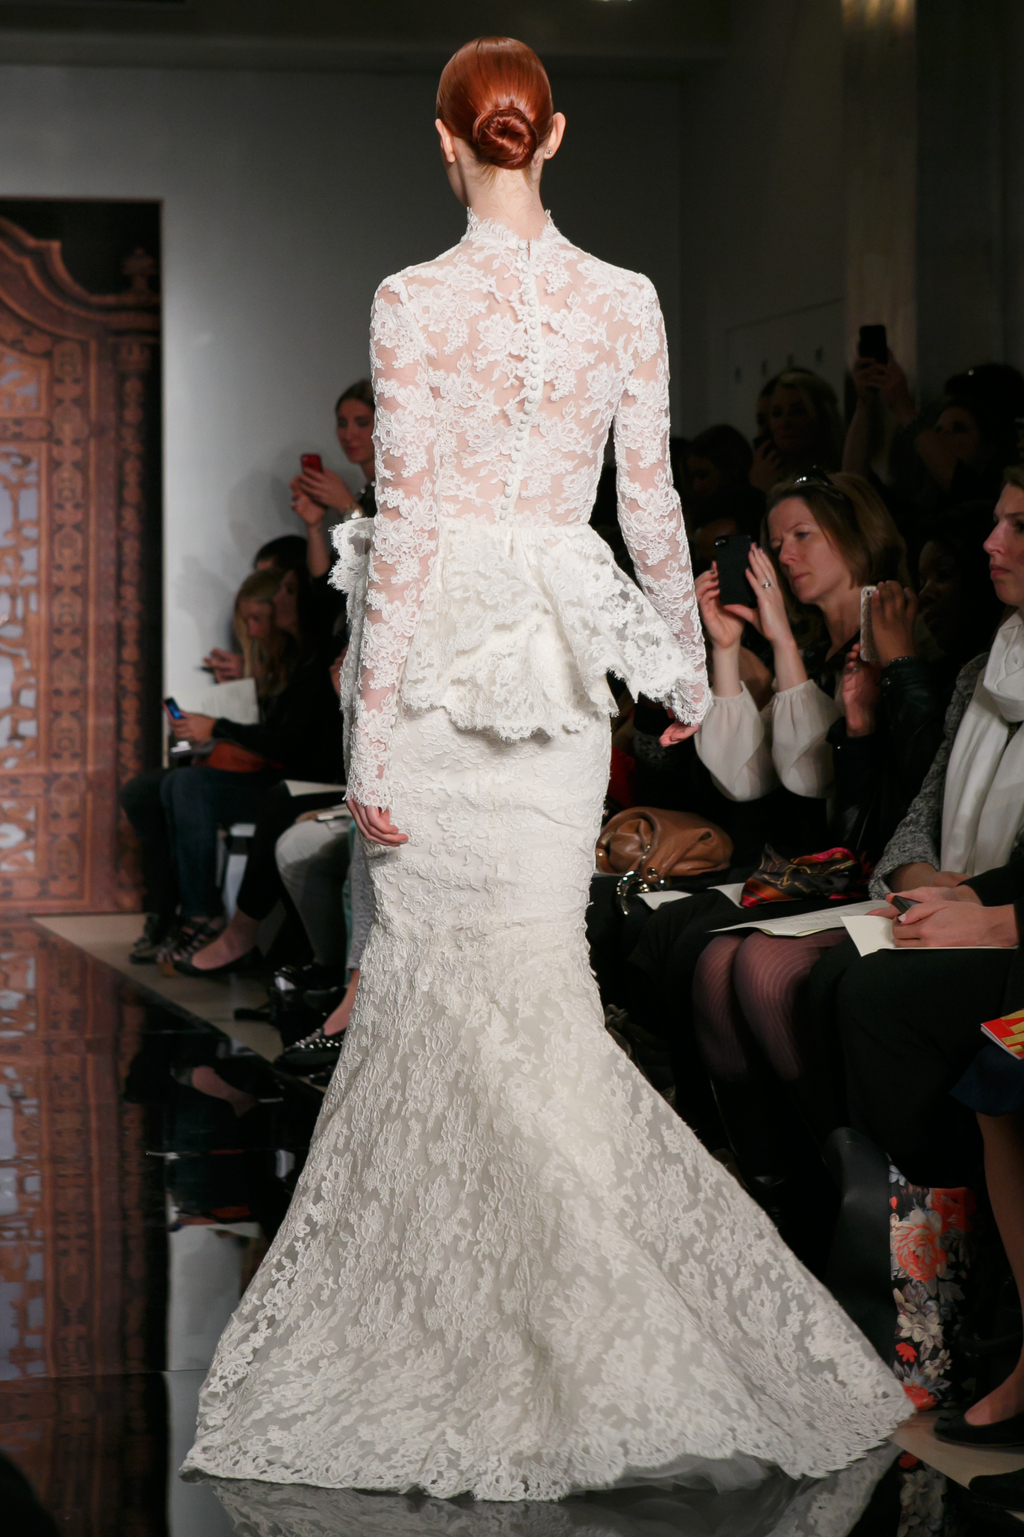 Reem-acra-wedding-dress-fall-2013-bridal-frances-alluring-beauty-touch-of-lace-peplum.full